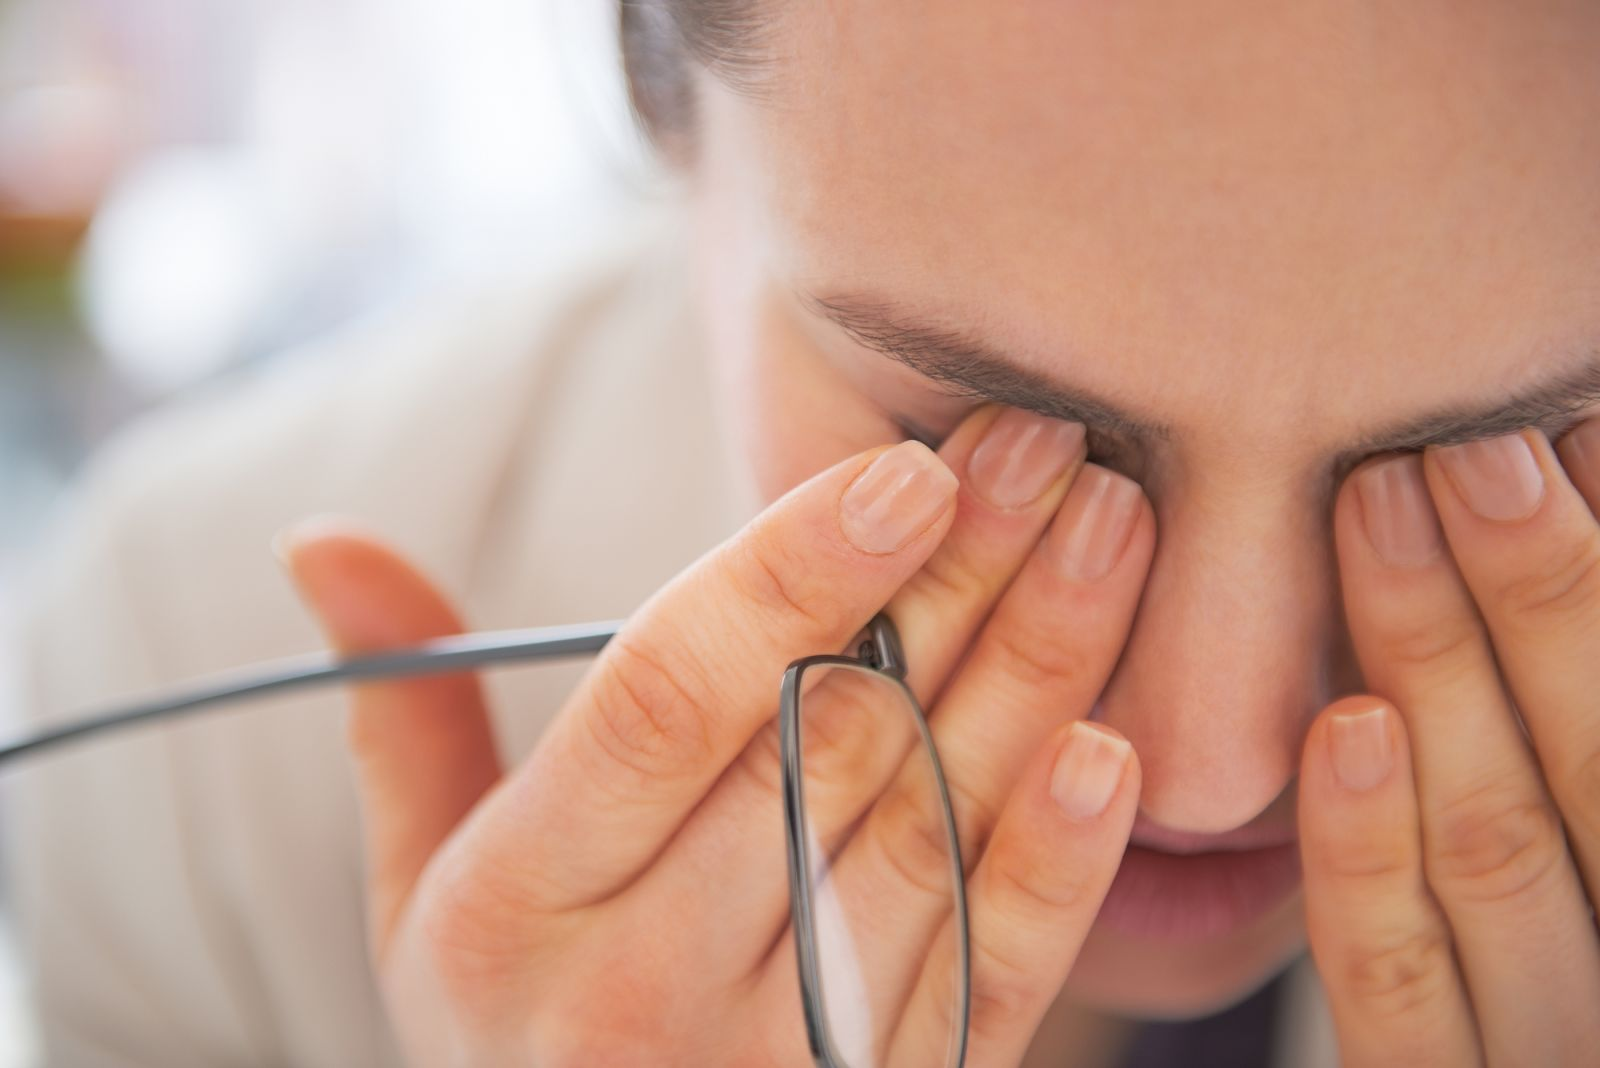 Warning signs of a serious eye problem